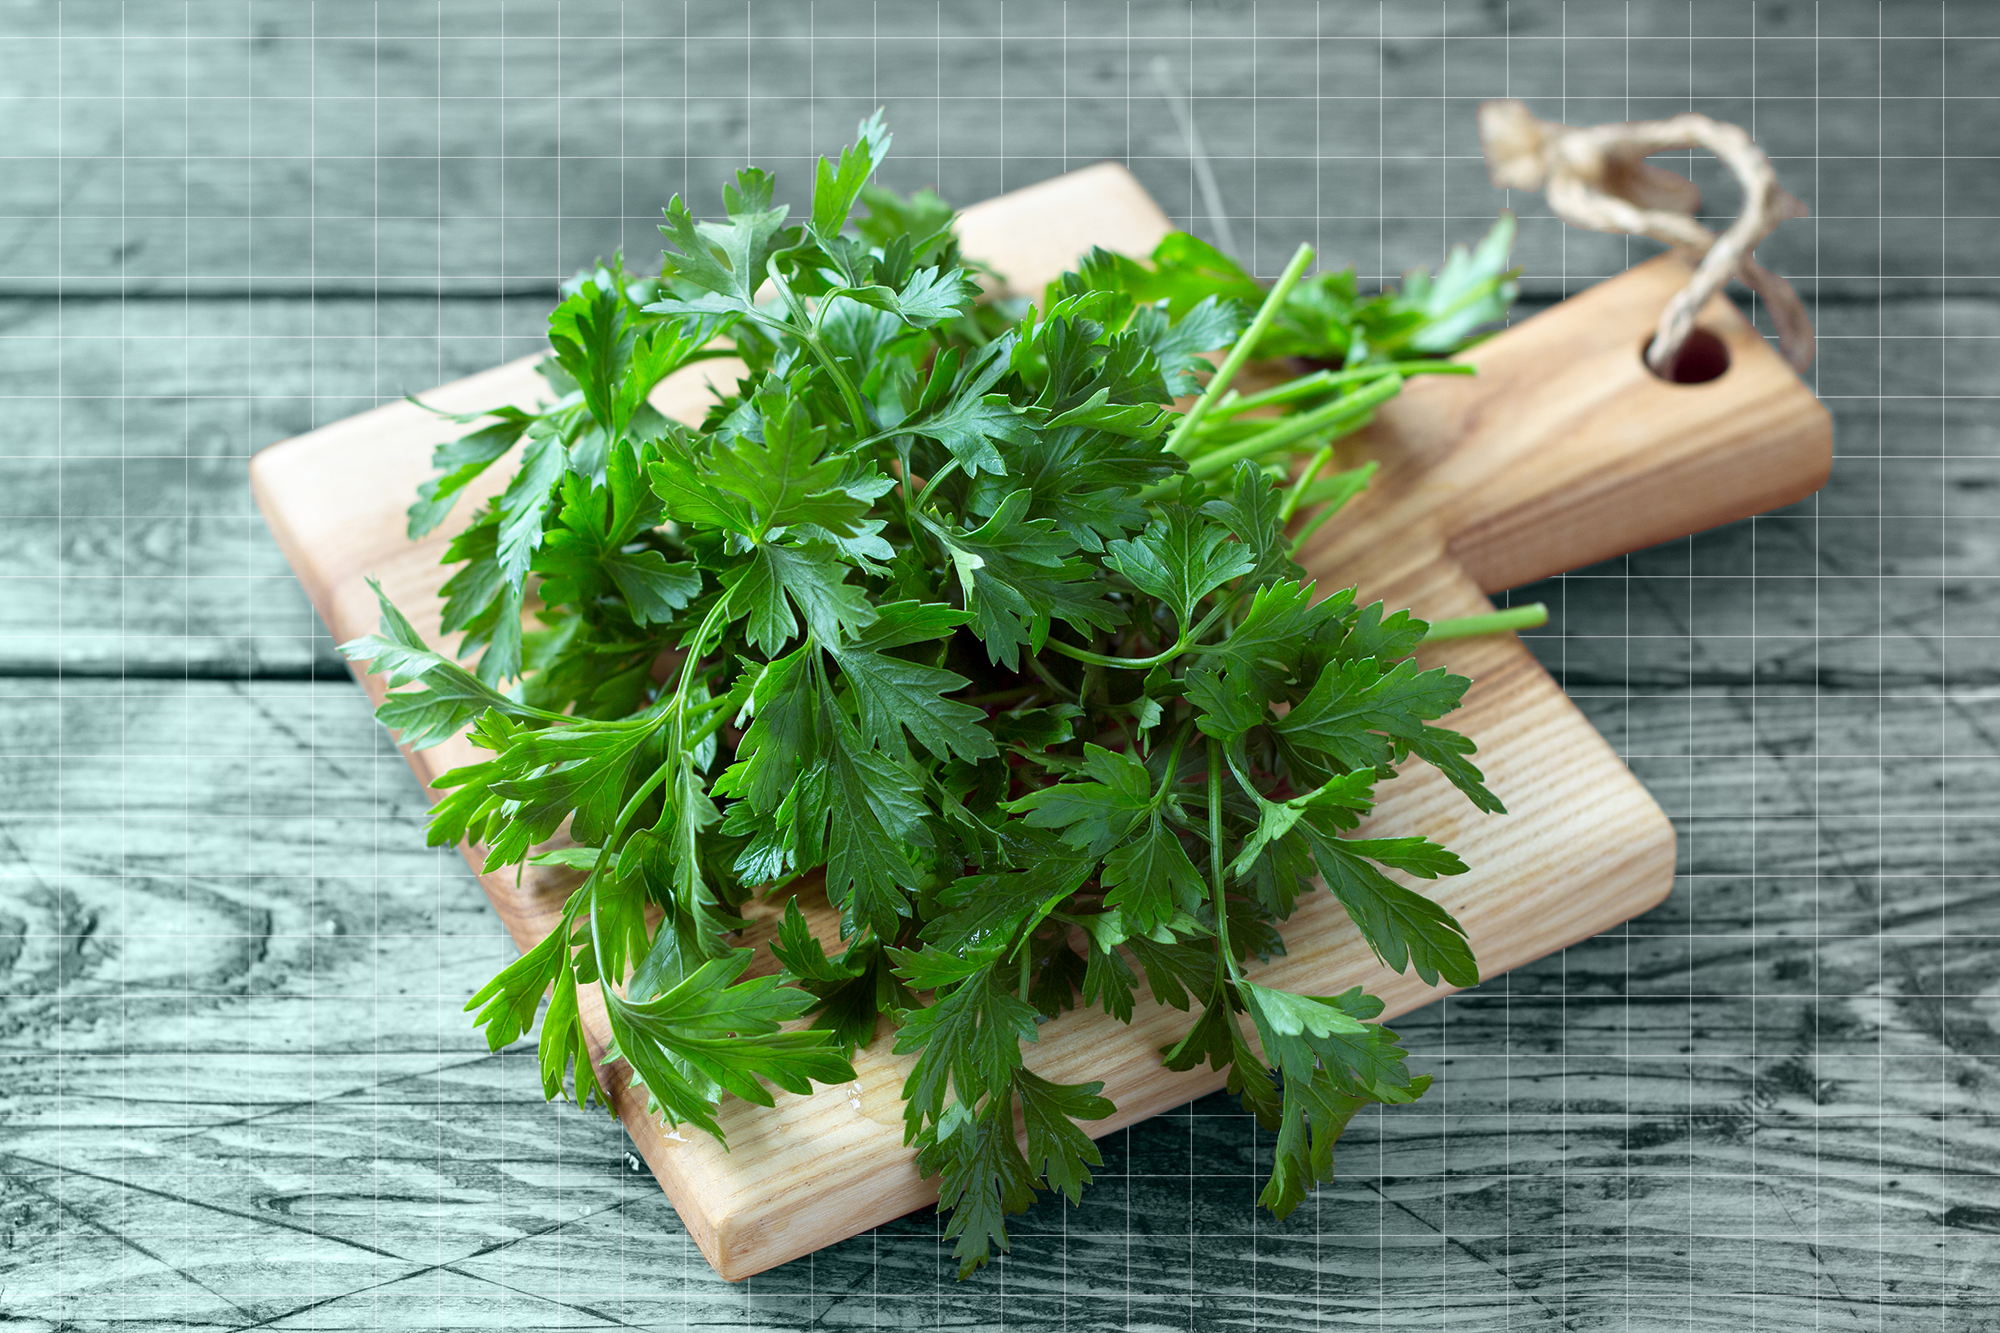 Bunch of fresh organic parsley on a cutting board on a wooden table